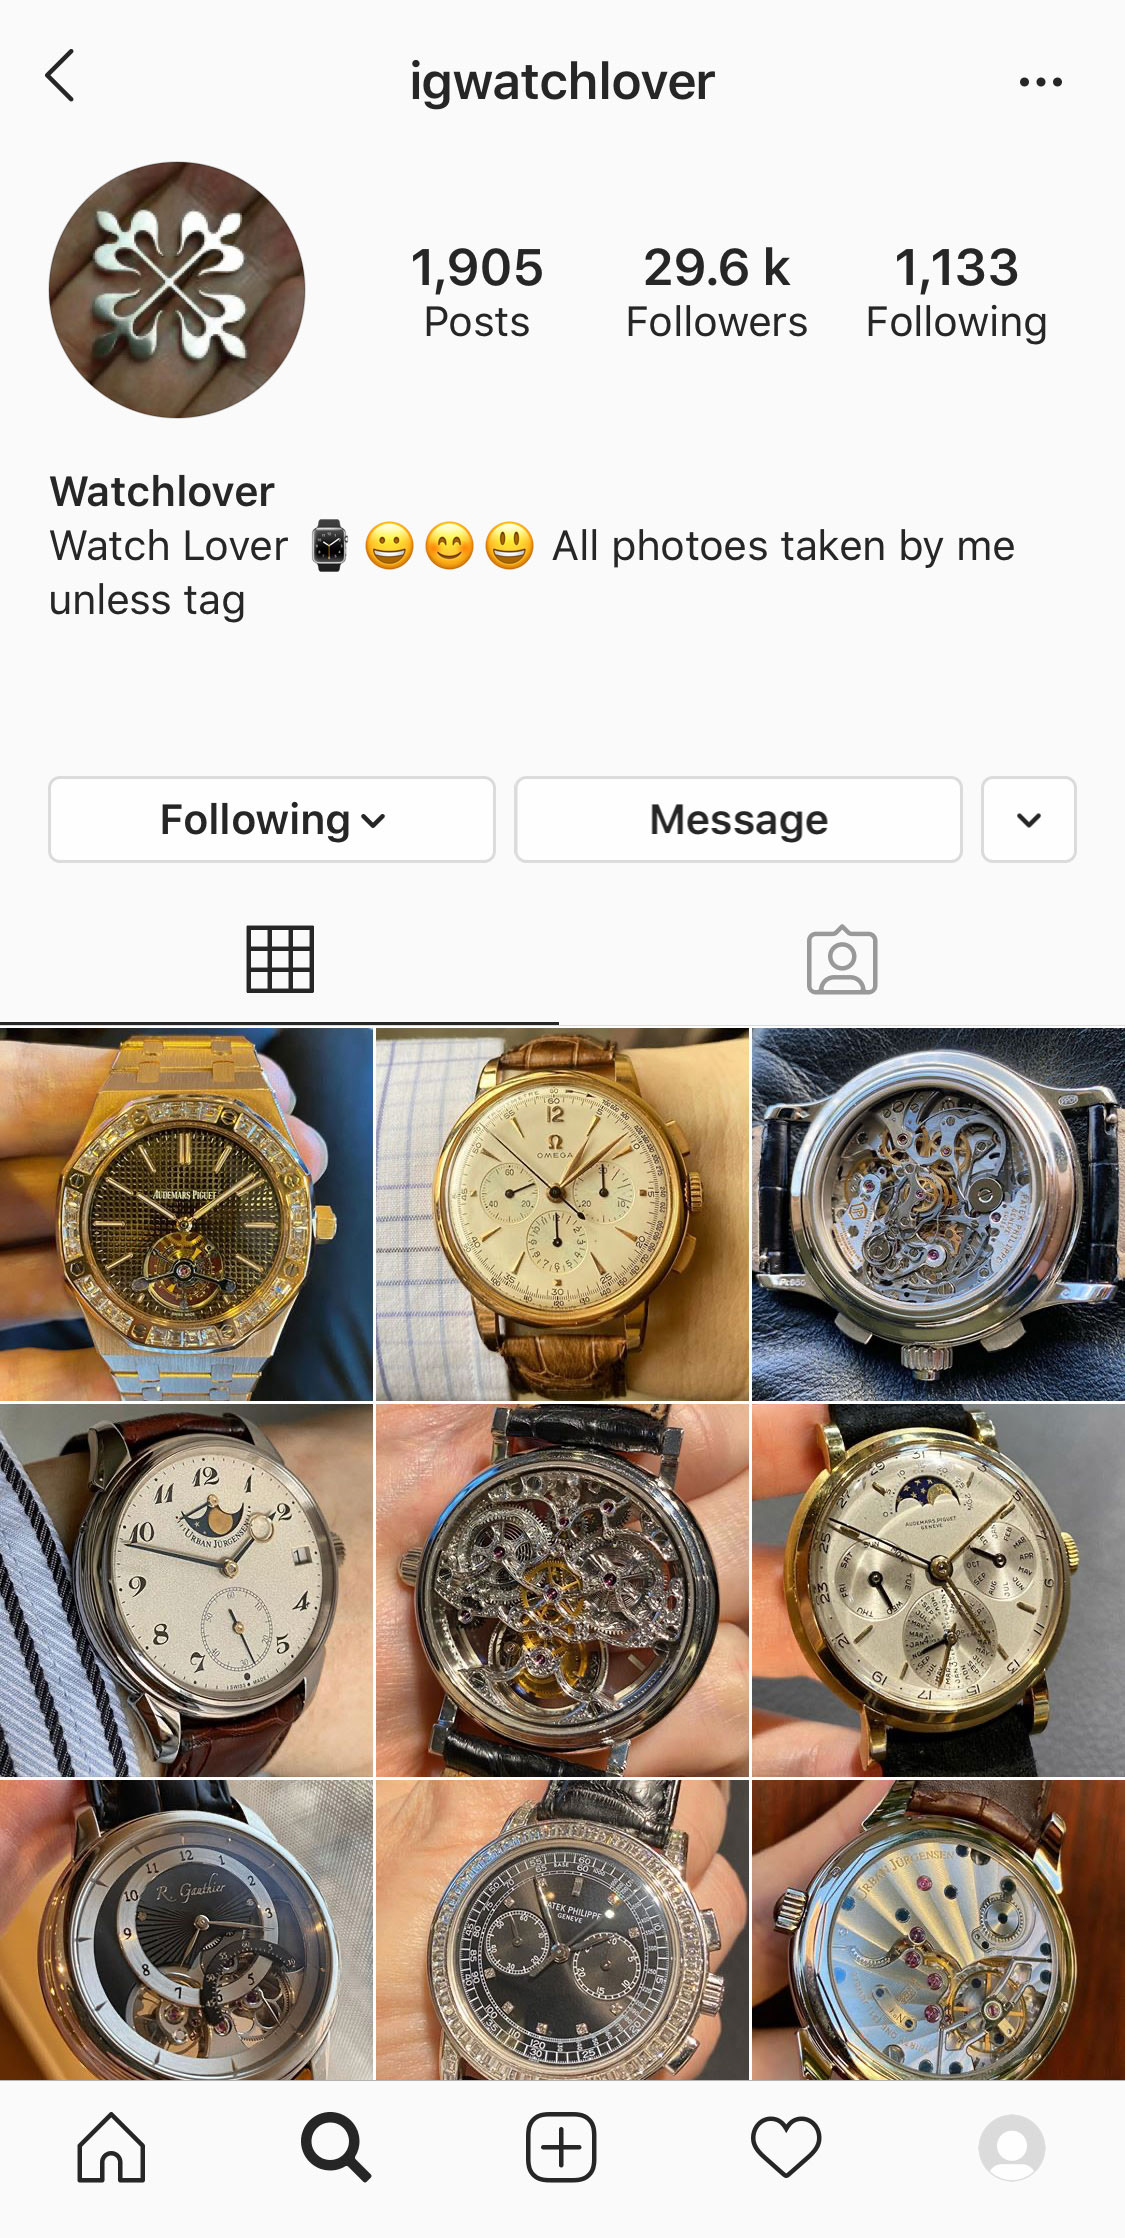 Eight Collectors of Independent Watchmaking to Follow on Instagram